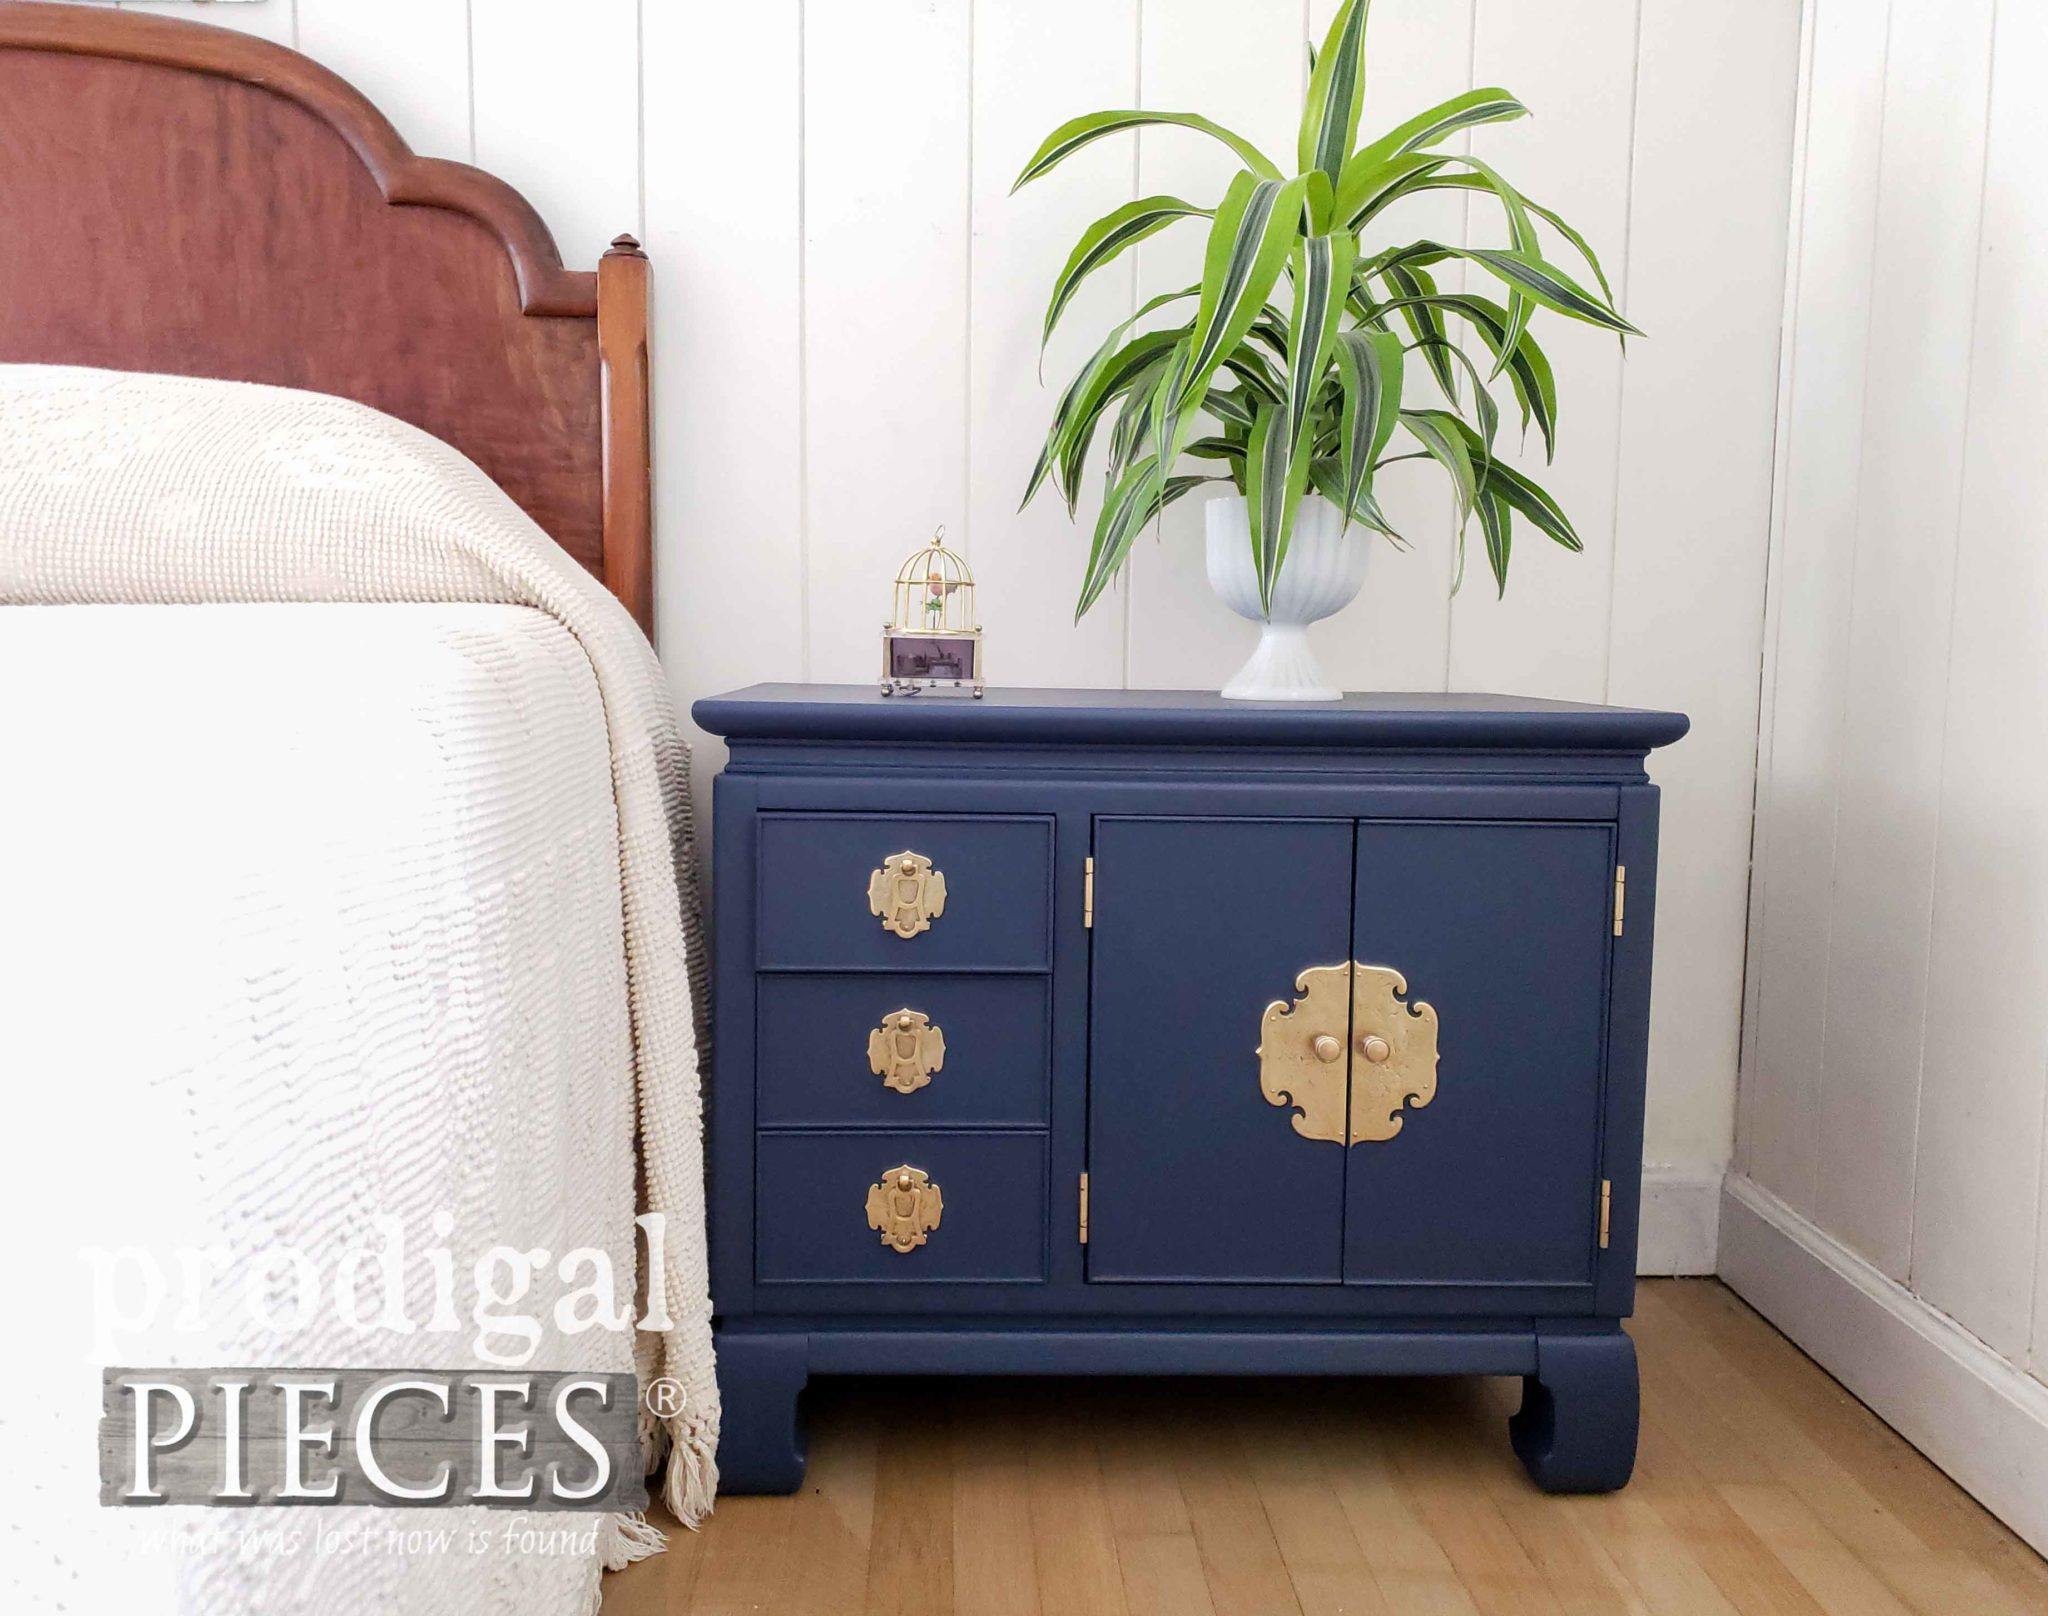 Vintage Style Boho Bedroom with Chest Nightstand by Larissa of Prodigal Pieces | prodigalpieces.com